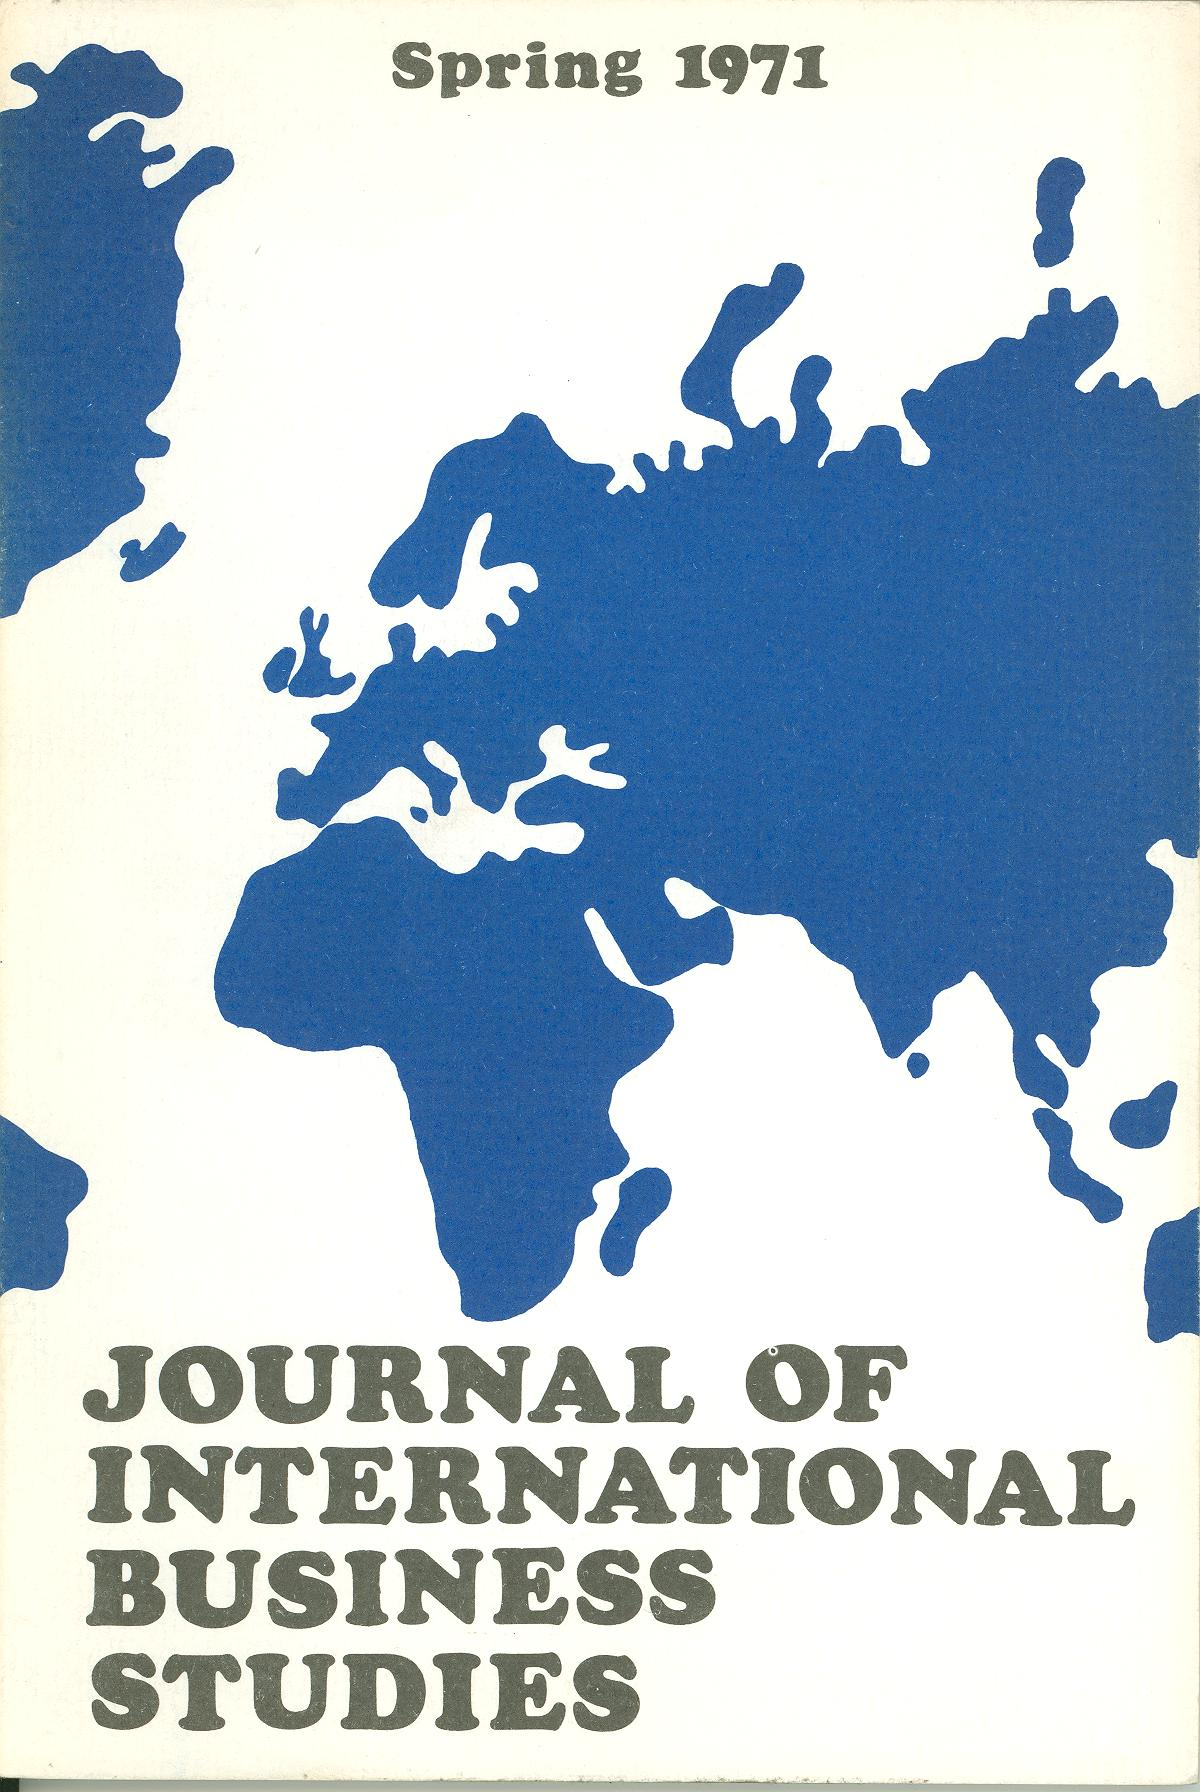 Cover design from a 1971 issue of JIBS